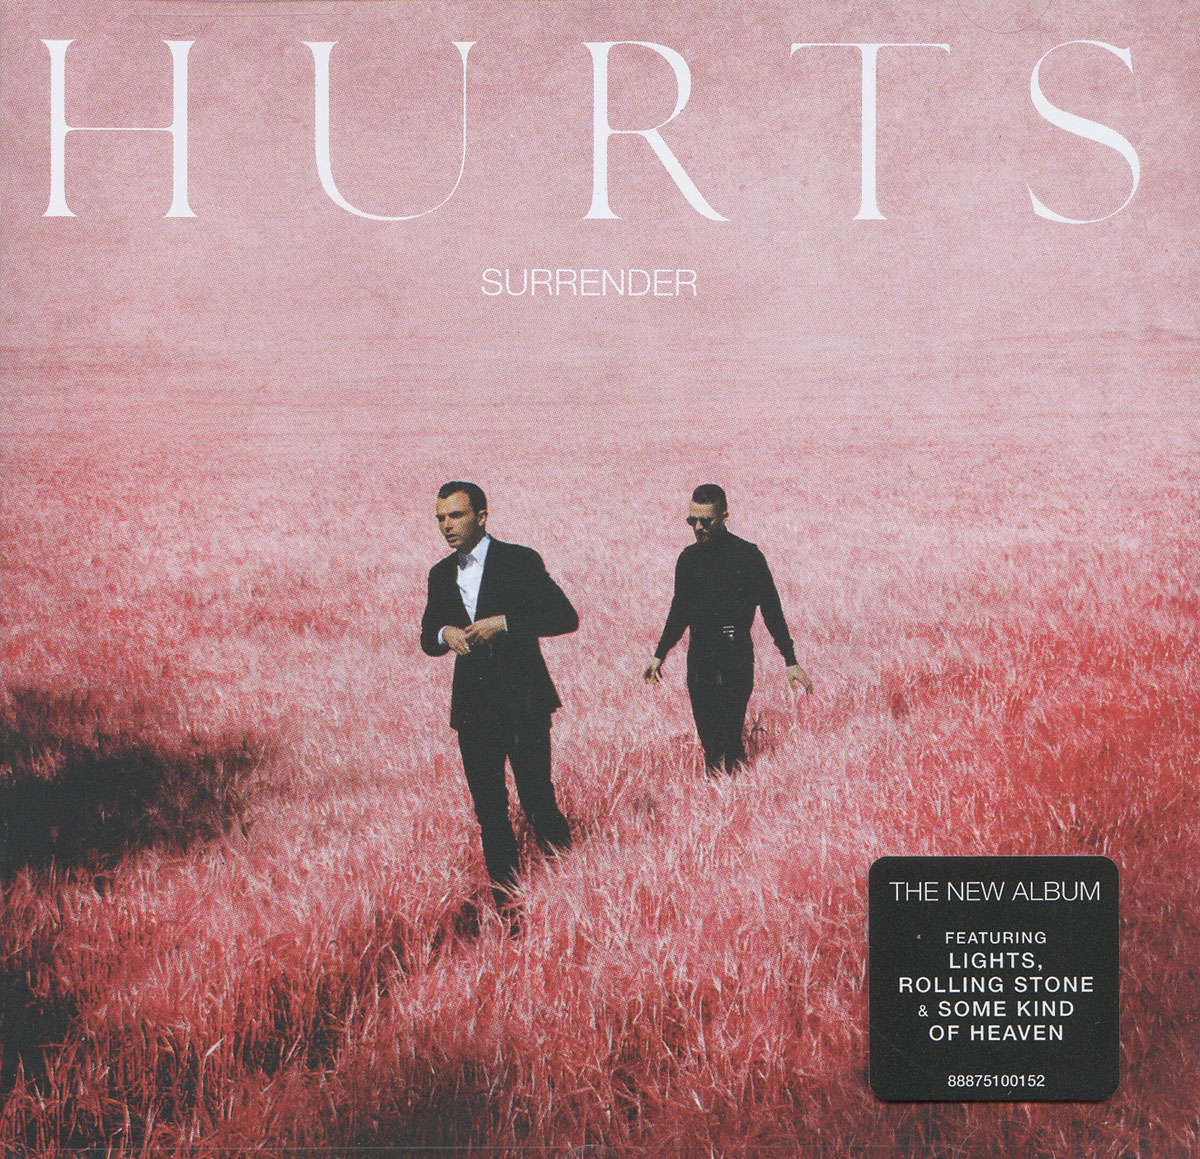 Hurts Hurts. Surrender hurts surrender cd